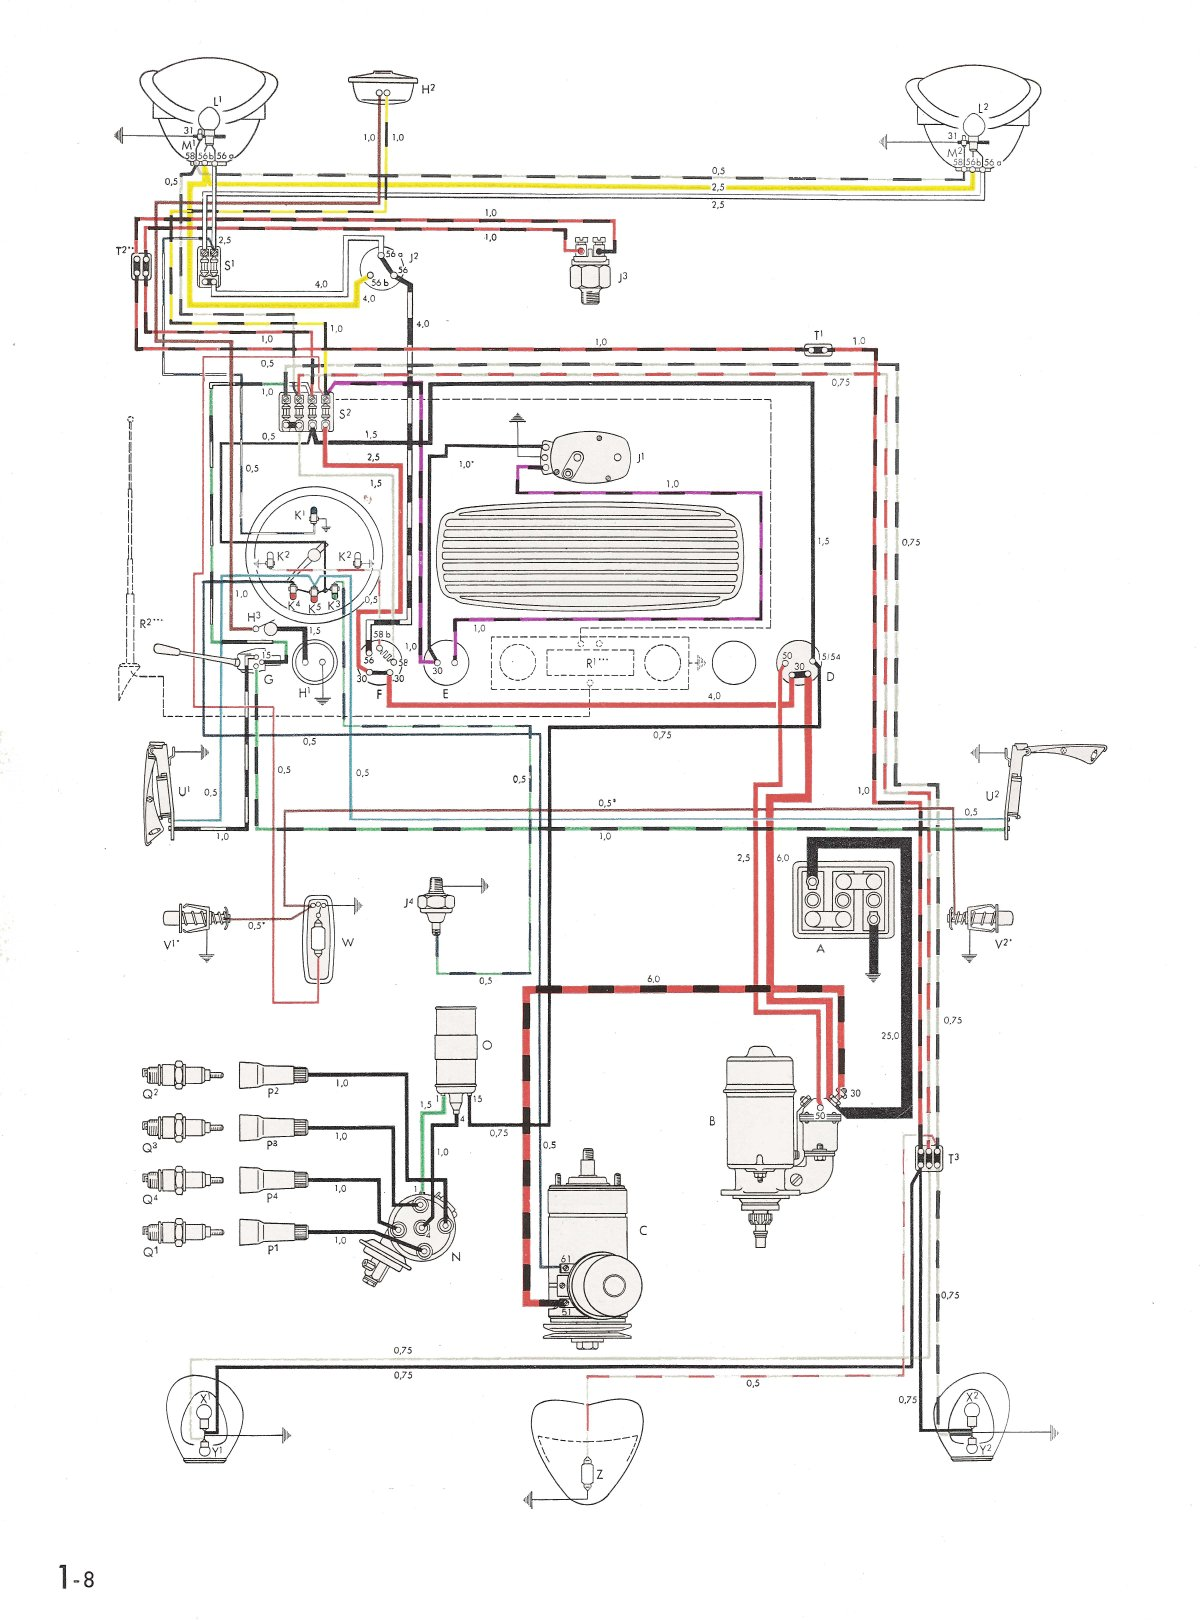 79 Vw Beetle Wiring Diagram - Ote.fslacademy.uk •  Vw New Beetle Wiring Schematic on vw beetle specifications, vw beetle radio, vw beetle hood, vw beetle forum, vw beetle shop manual, vw beetle service manual, vw beetle pickup, vw beetle gauges, vw beetle diagram, vw beetle fuses, vw beetle controls, vw beetle seat, vw beetle bug, vw beetle headlights, vw beetle performance, vw beetle fuel pump relay, vw beetle parts list, vw beetle battery, vw beetle starter, vw beetle throttle position sensor,